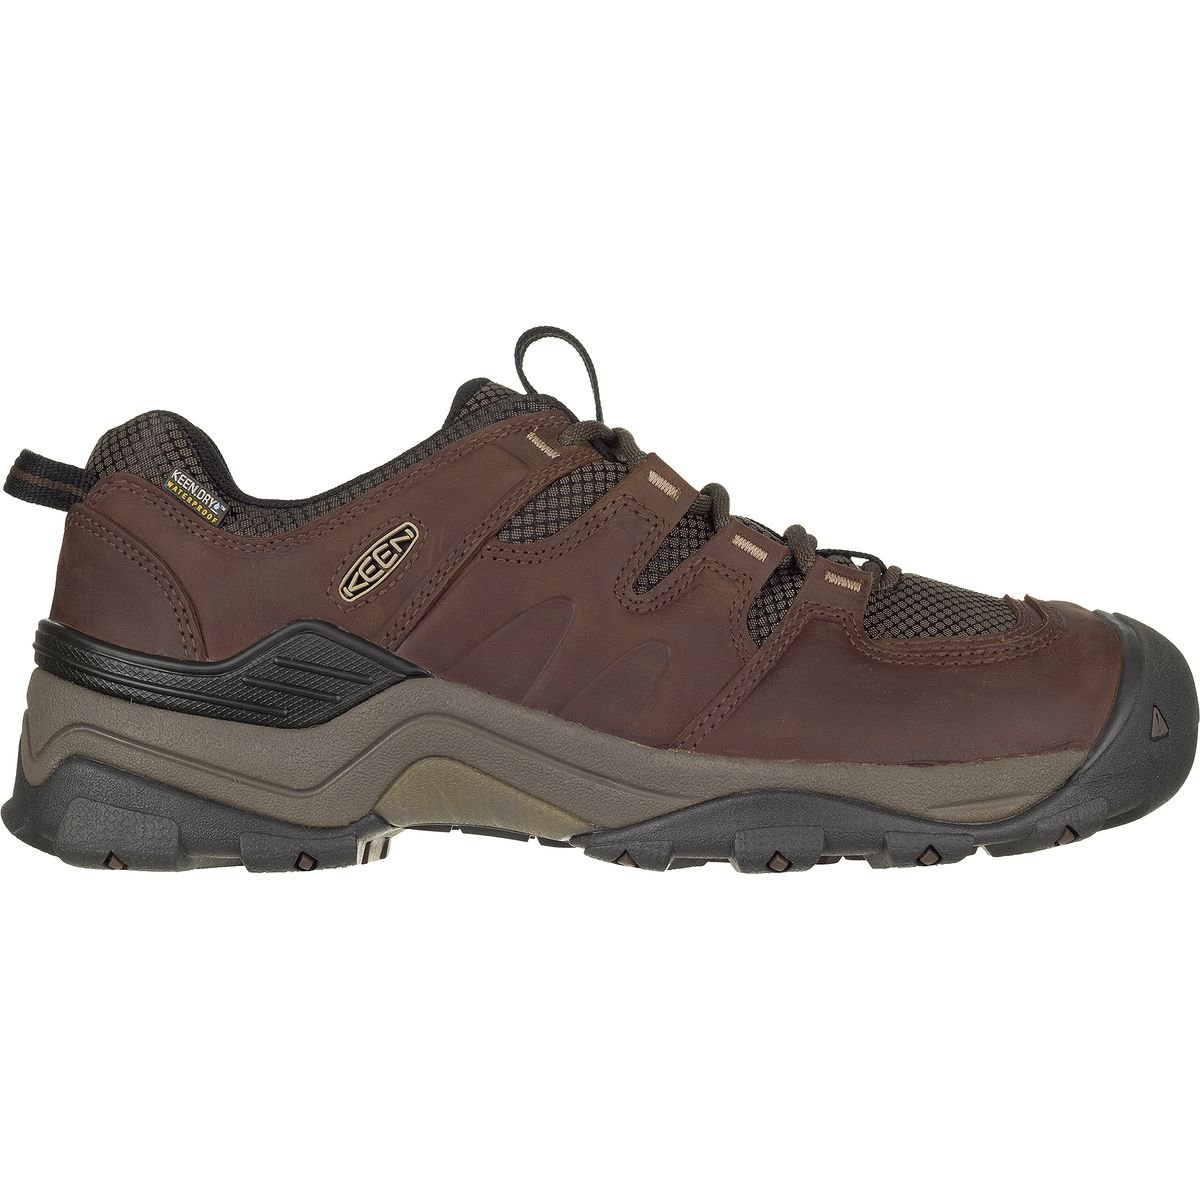 KEEN Men's Gypsum Ii Wp-m Backpacking Boot, Grand Canyon/Dark Earth, 7.5 M US by KEEN